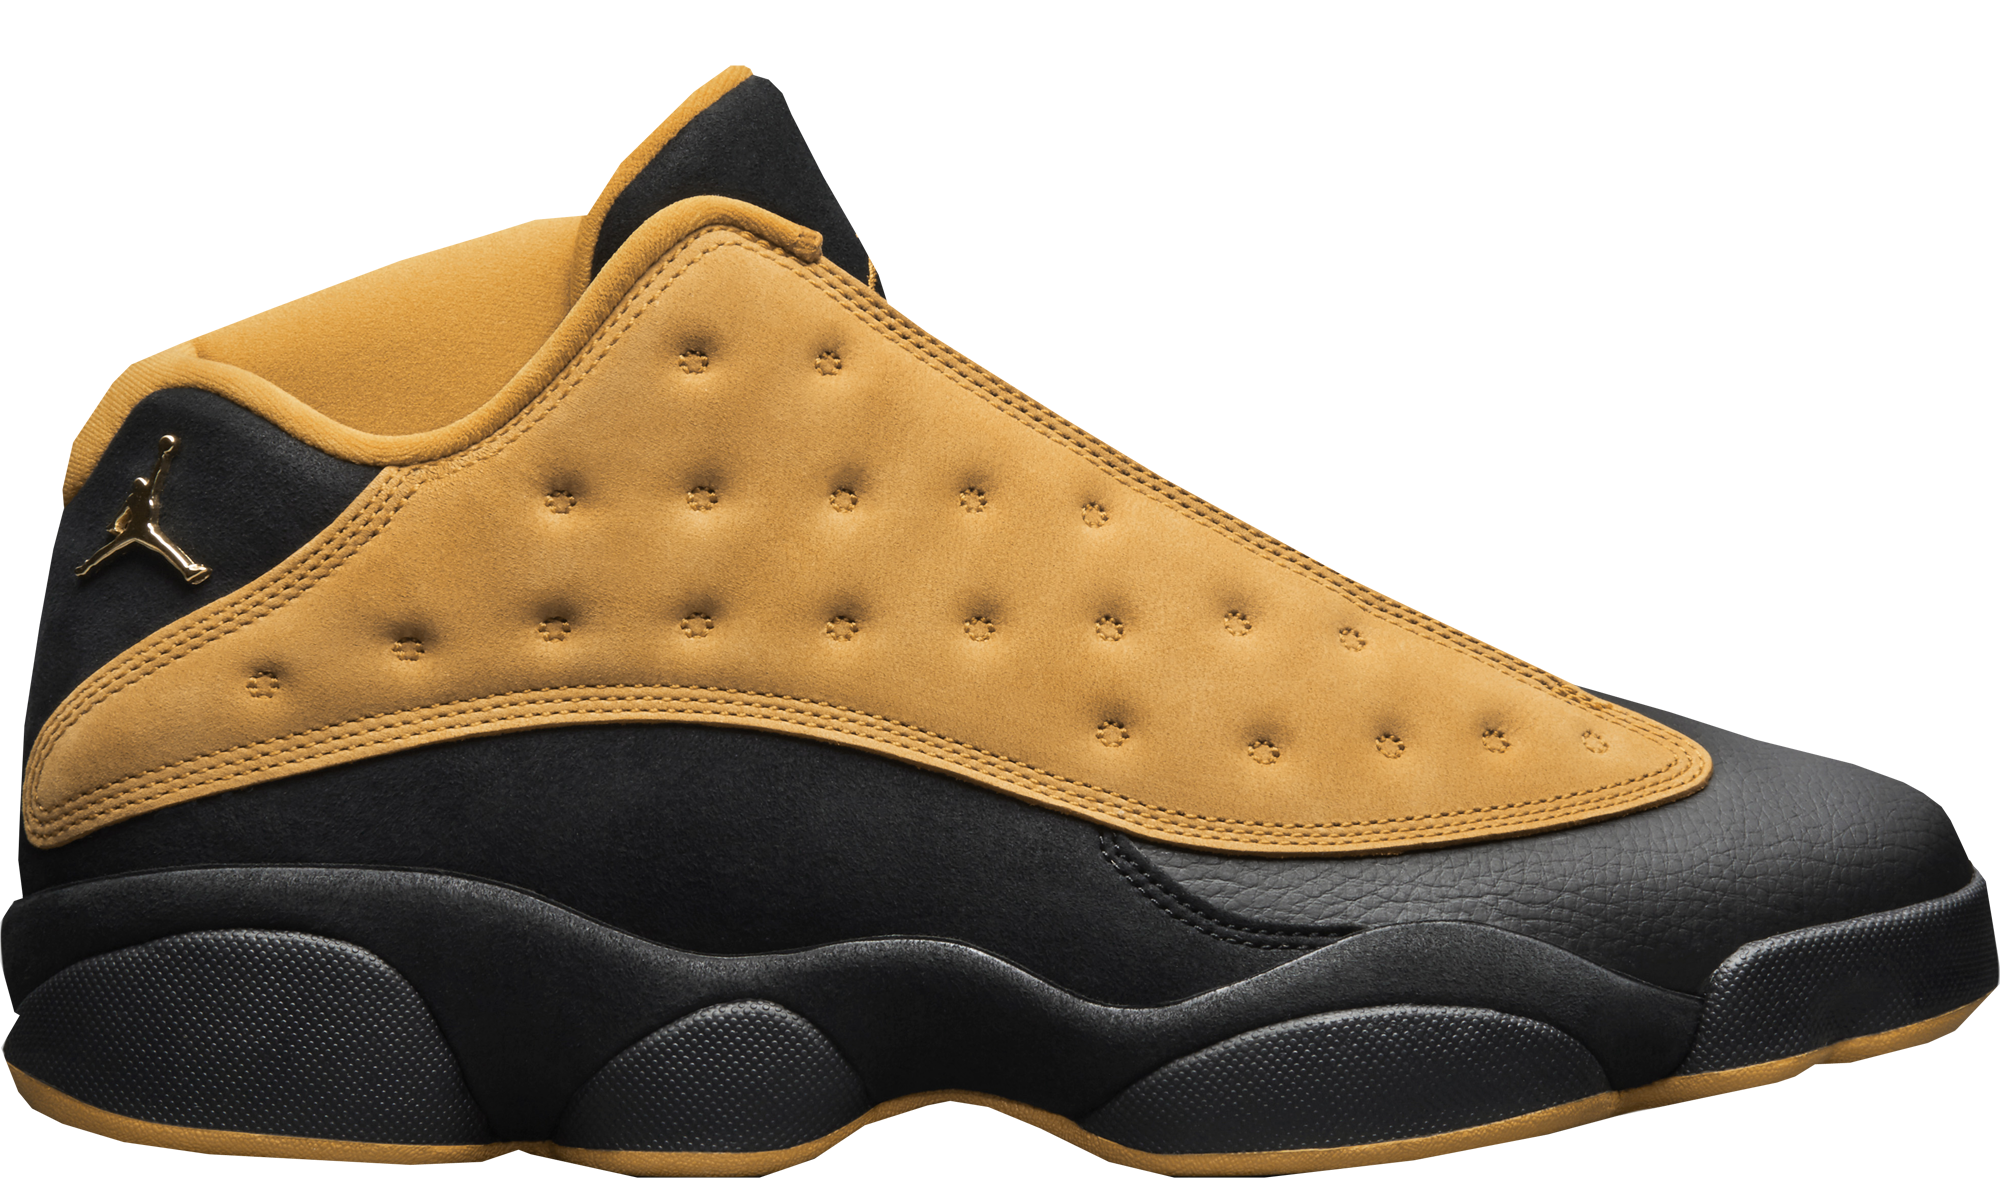 Air Jordan 13 Retro Low Chutney StockX News